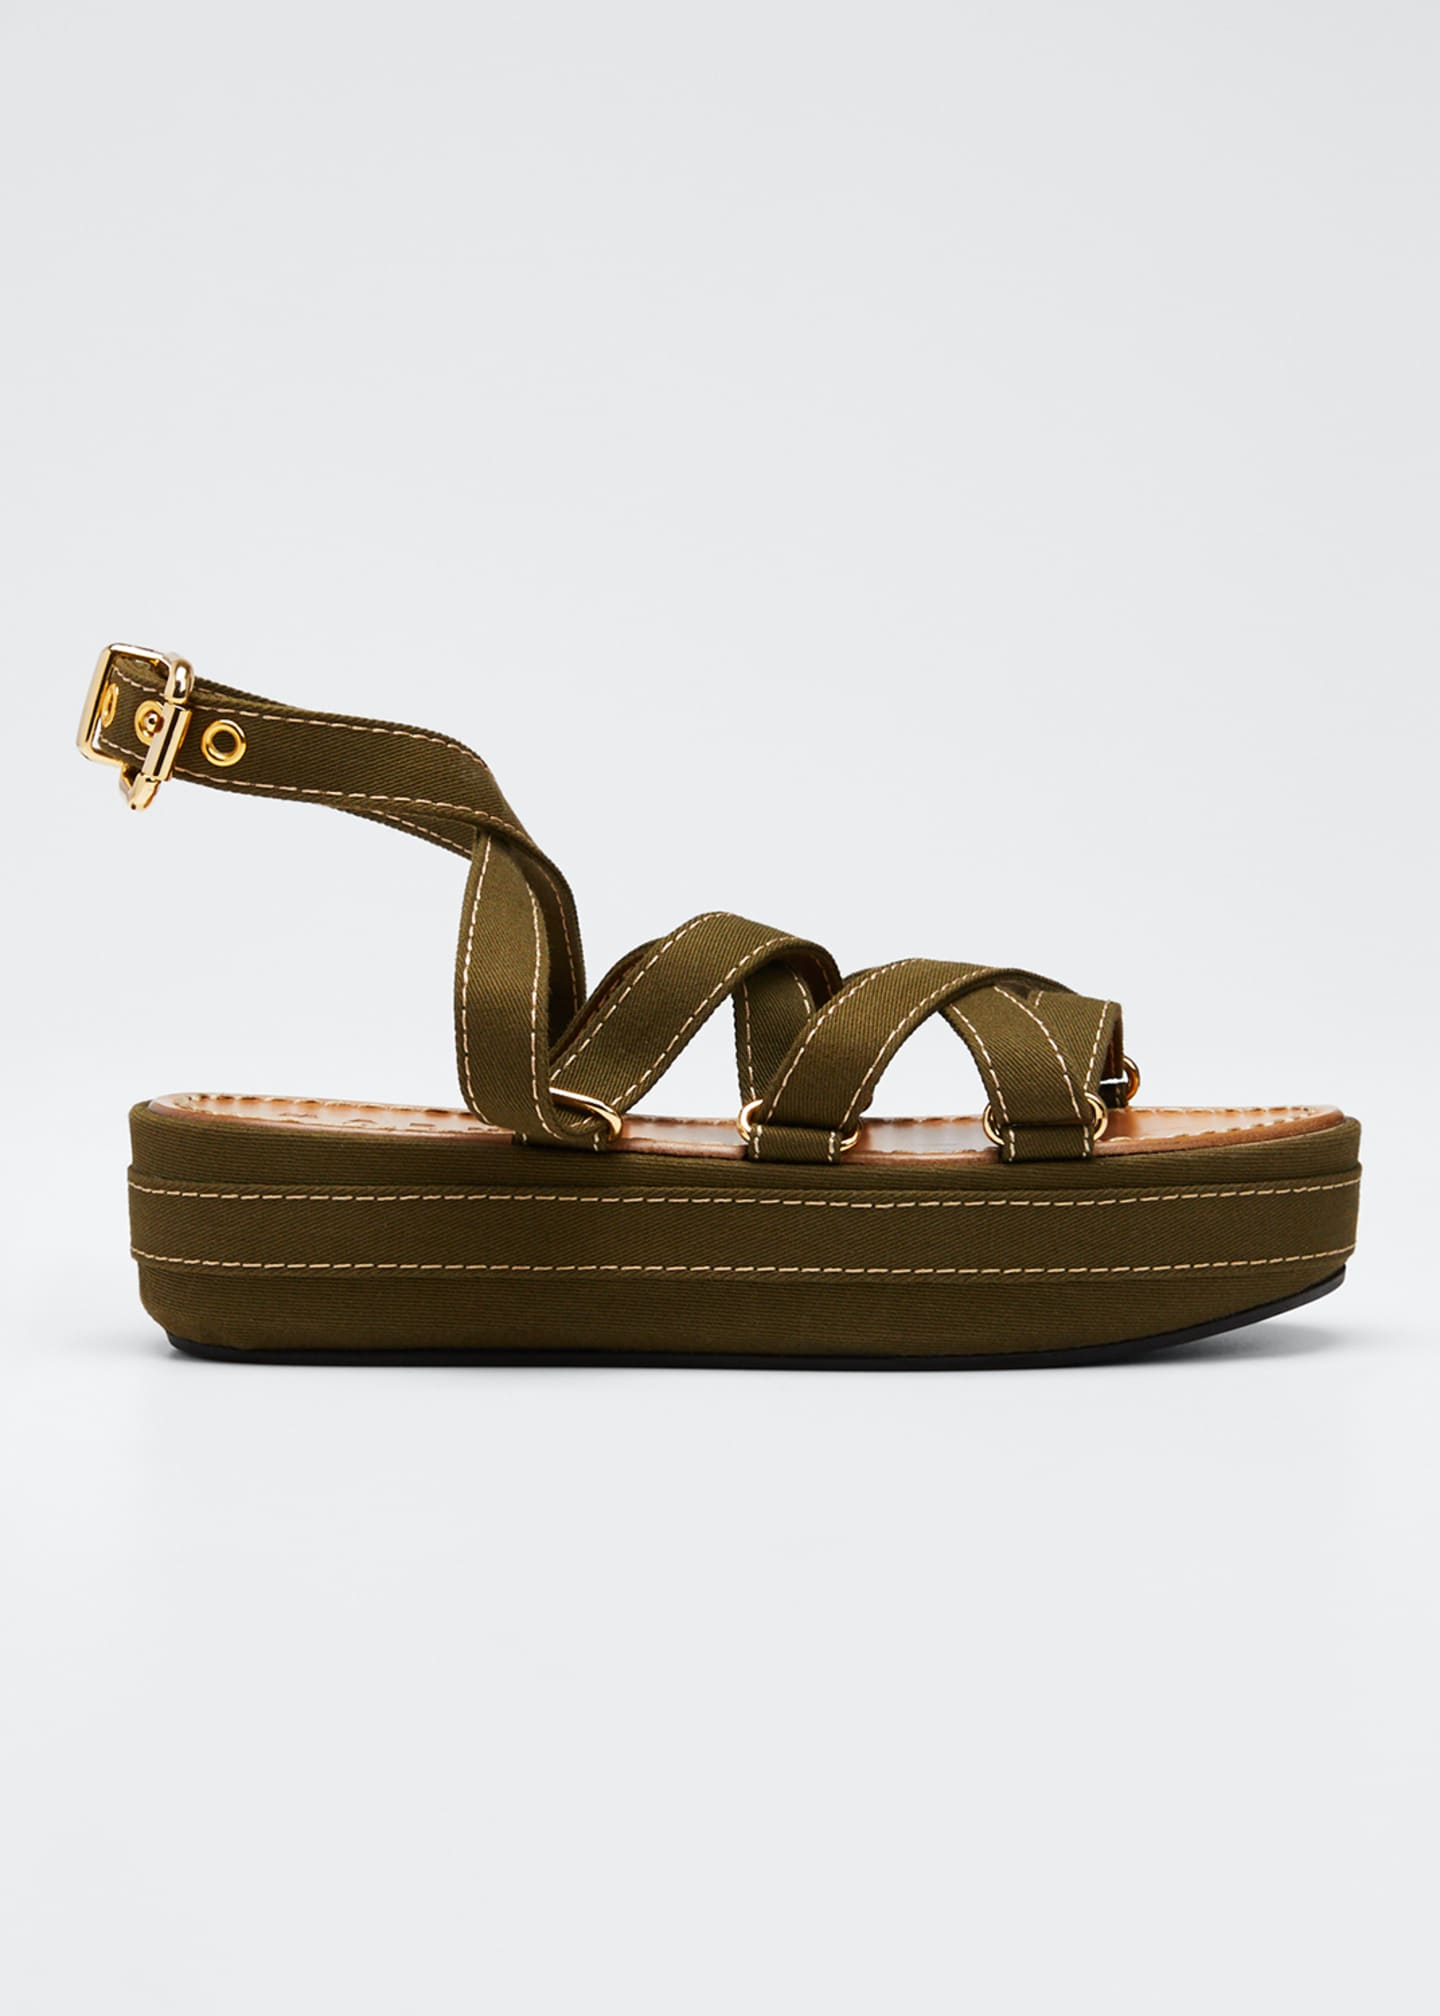 Marni Adventurer Platform Ankle Sandals